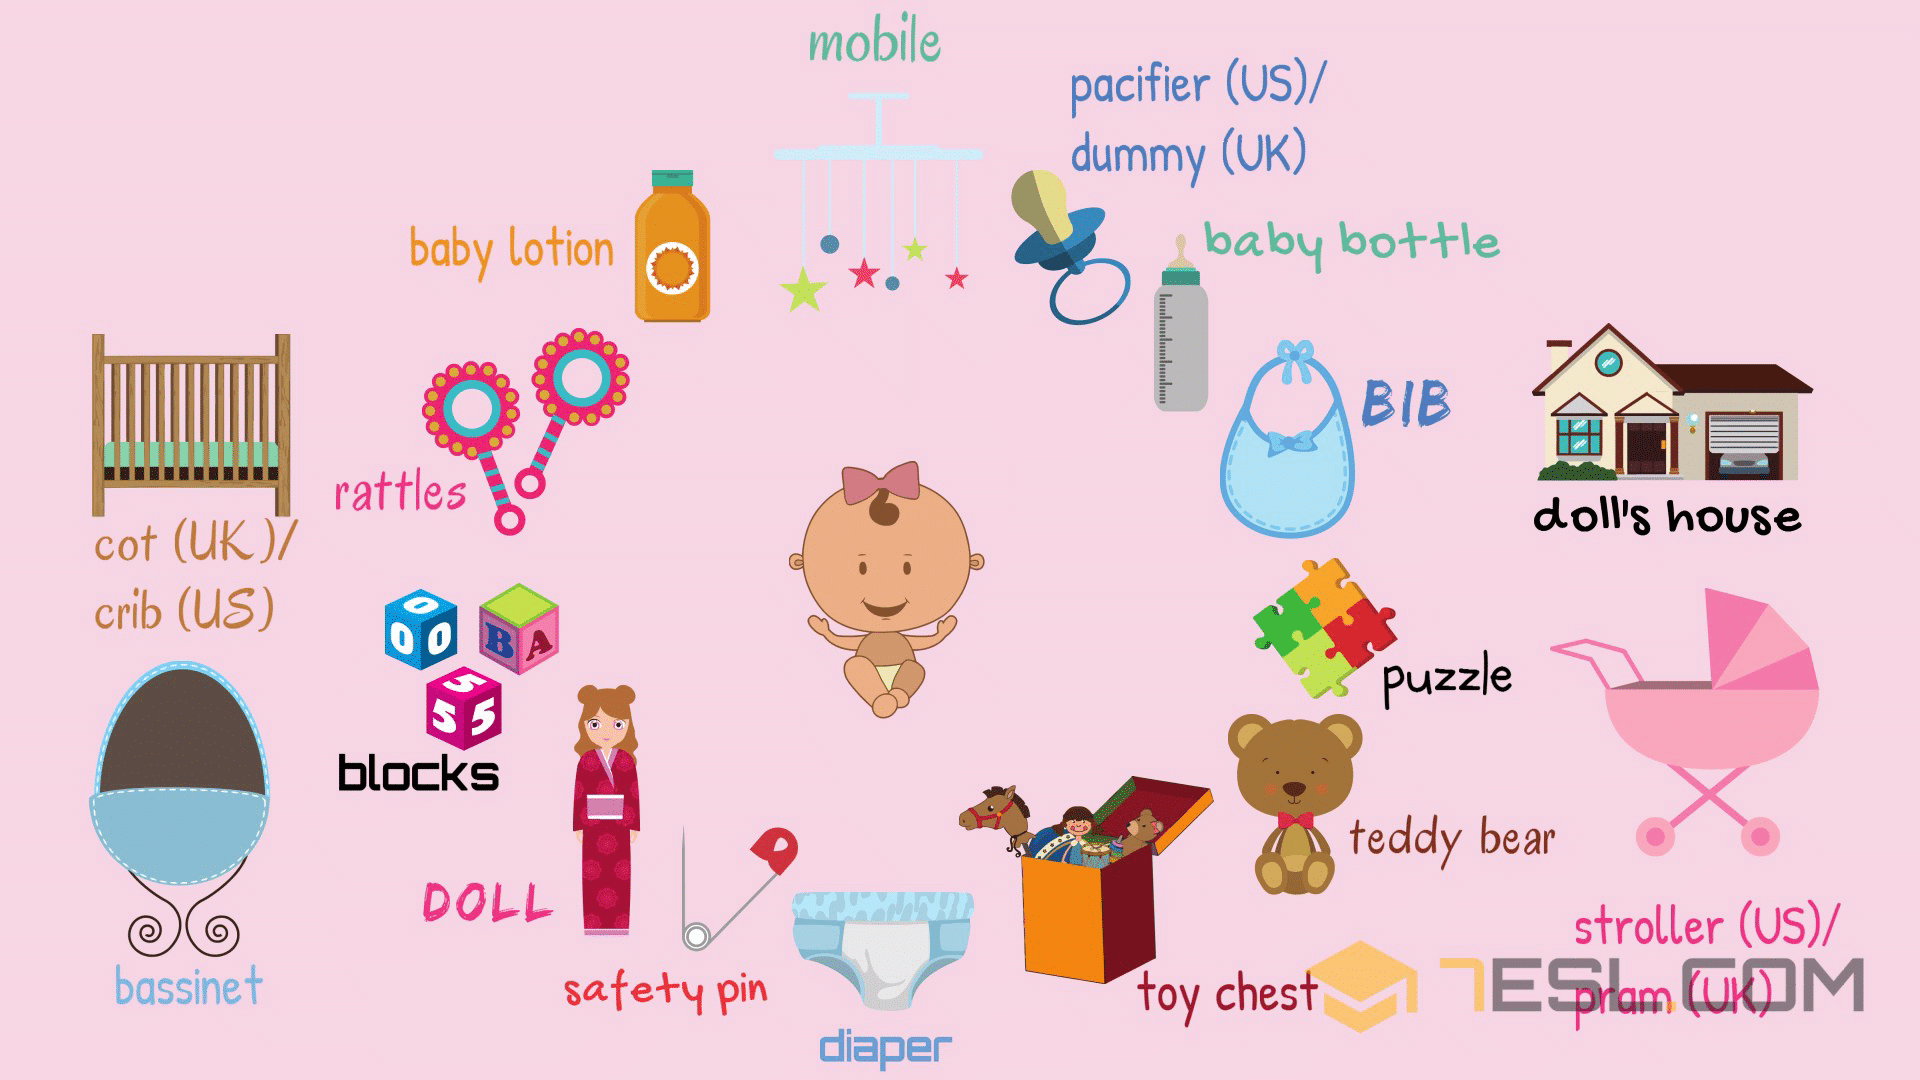 Baby Room: Baby Furniture and Accessories Vocabulary